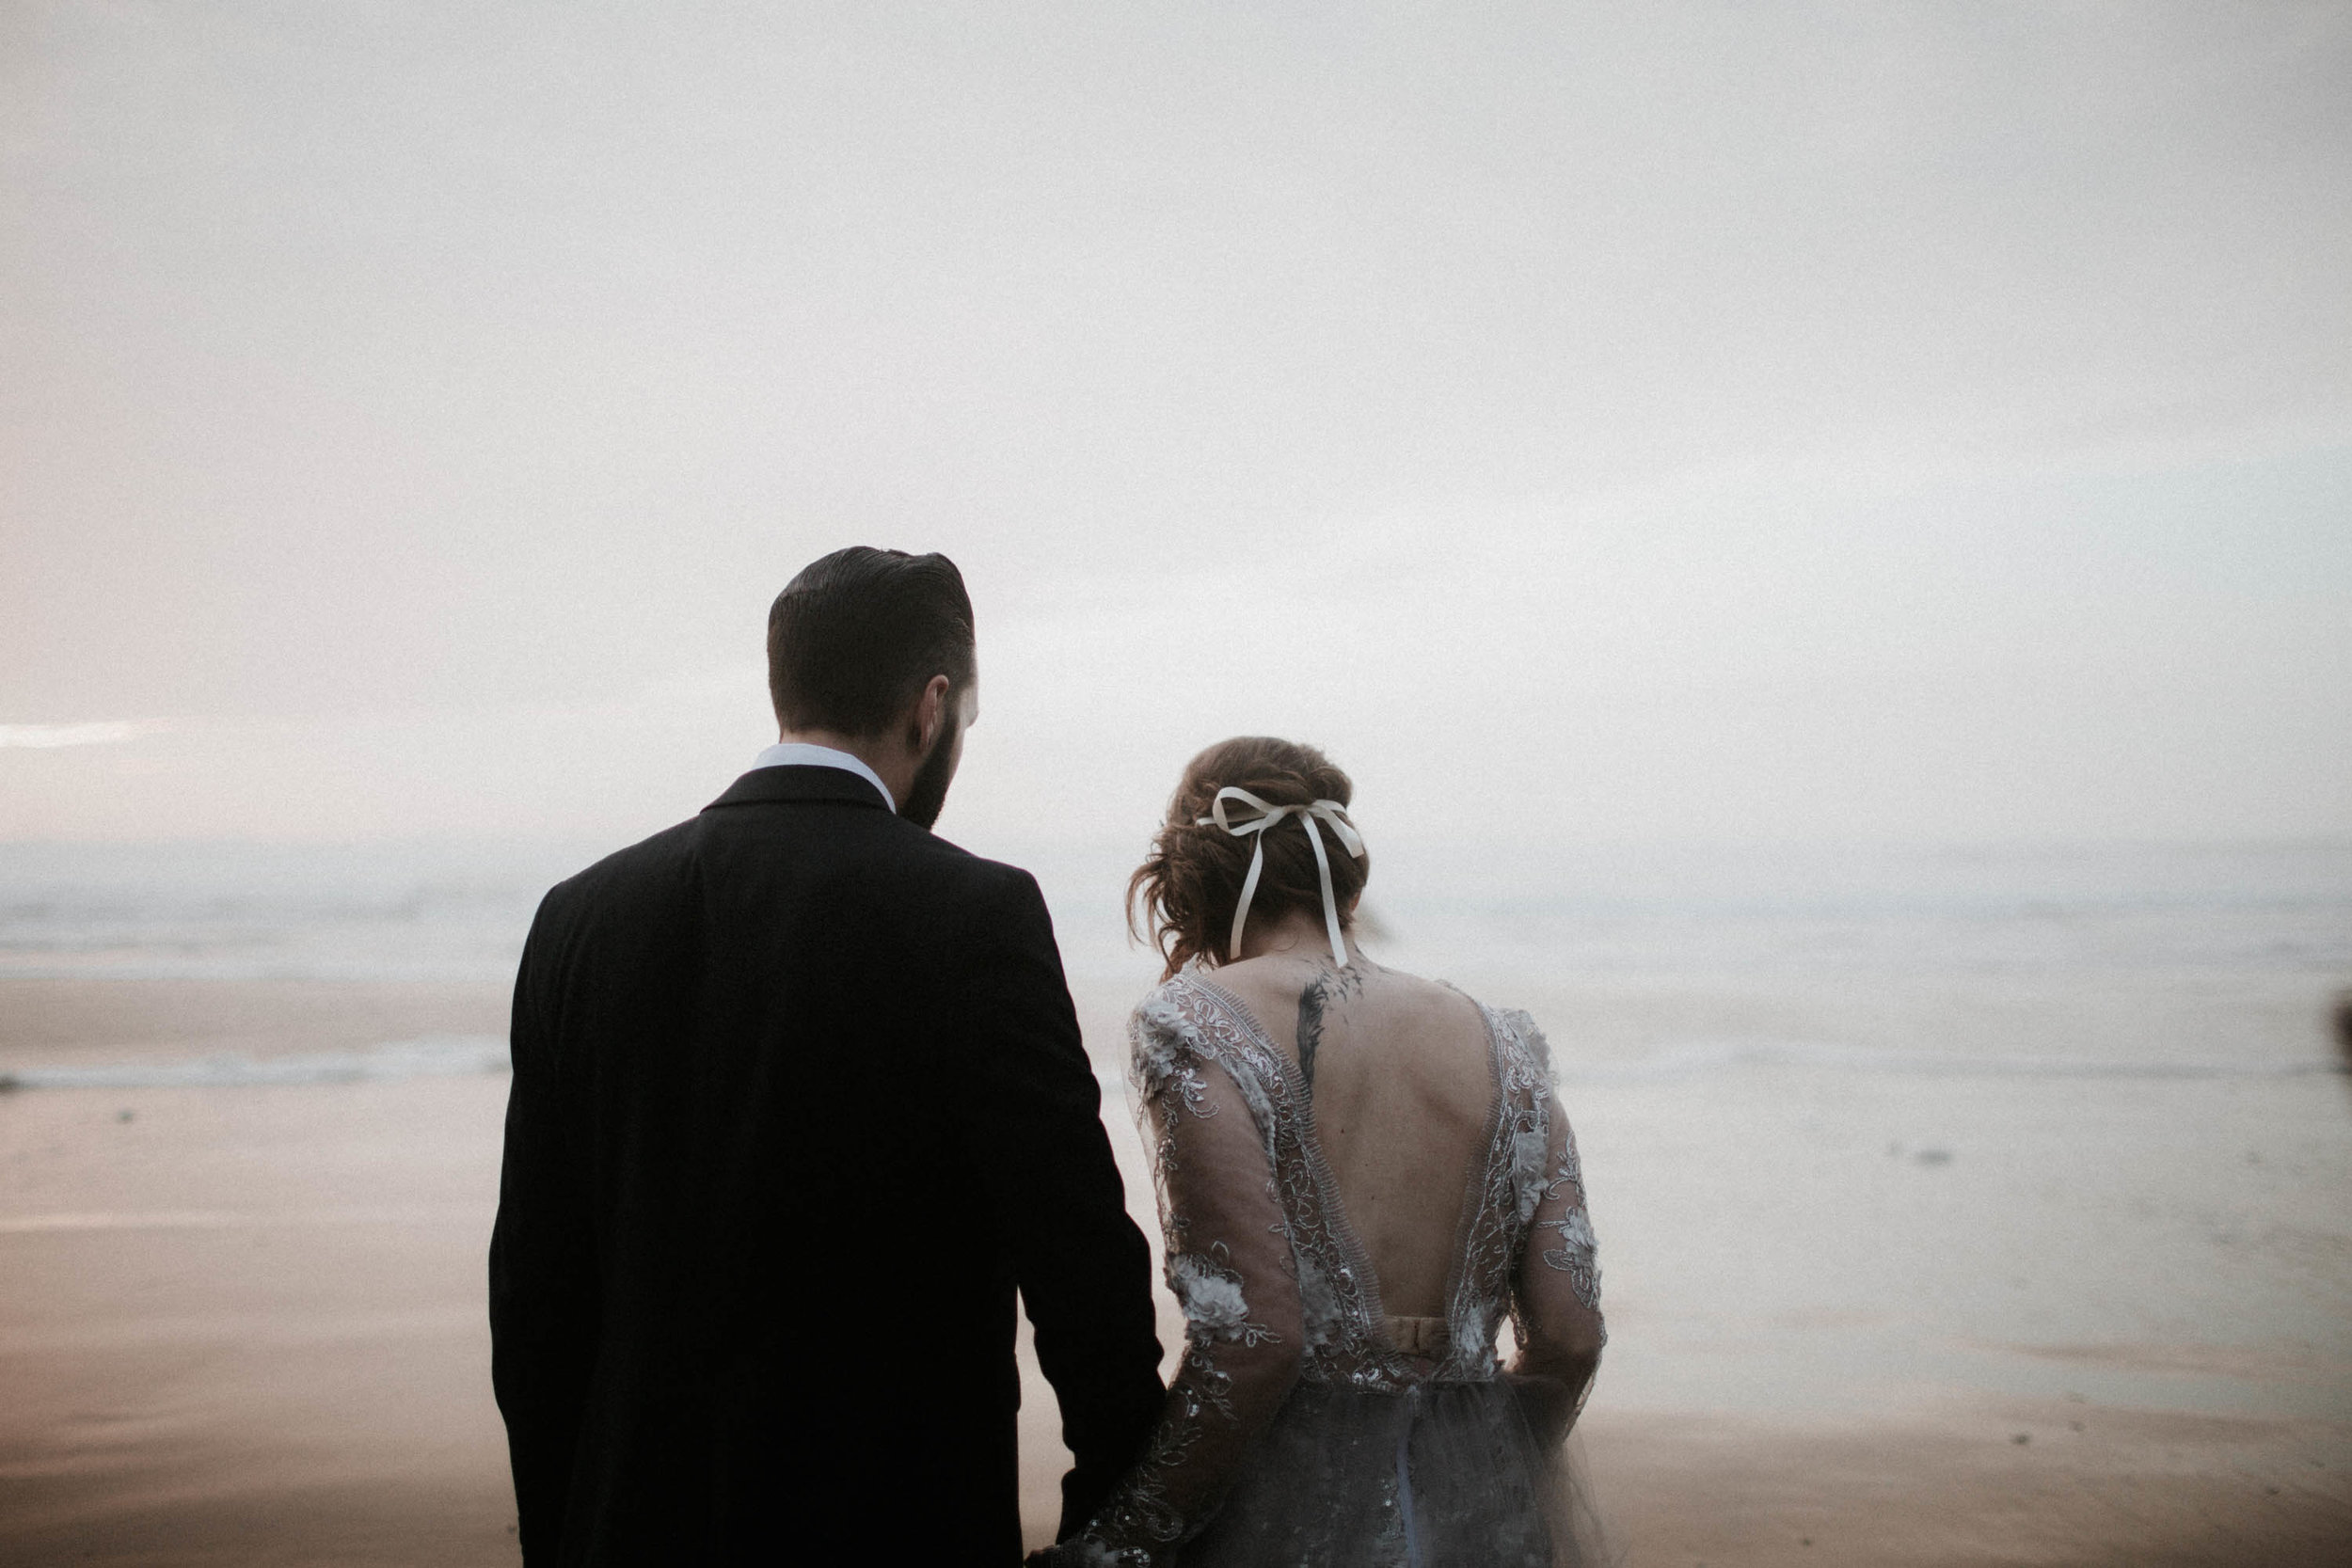 canonbeach_elopment_weddingphotographer-63.jpg